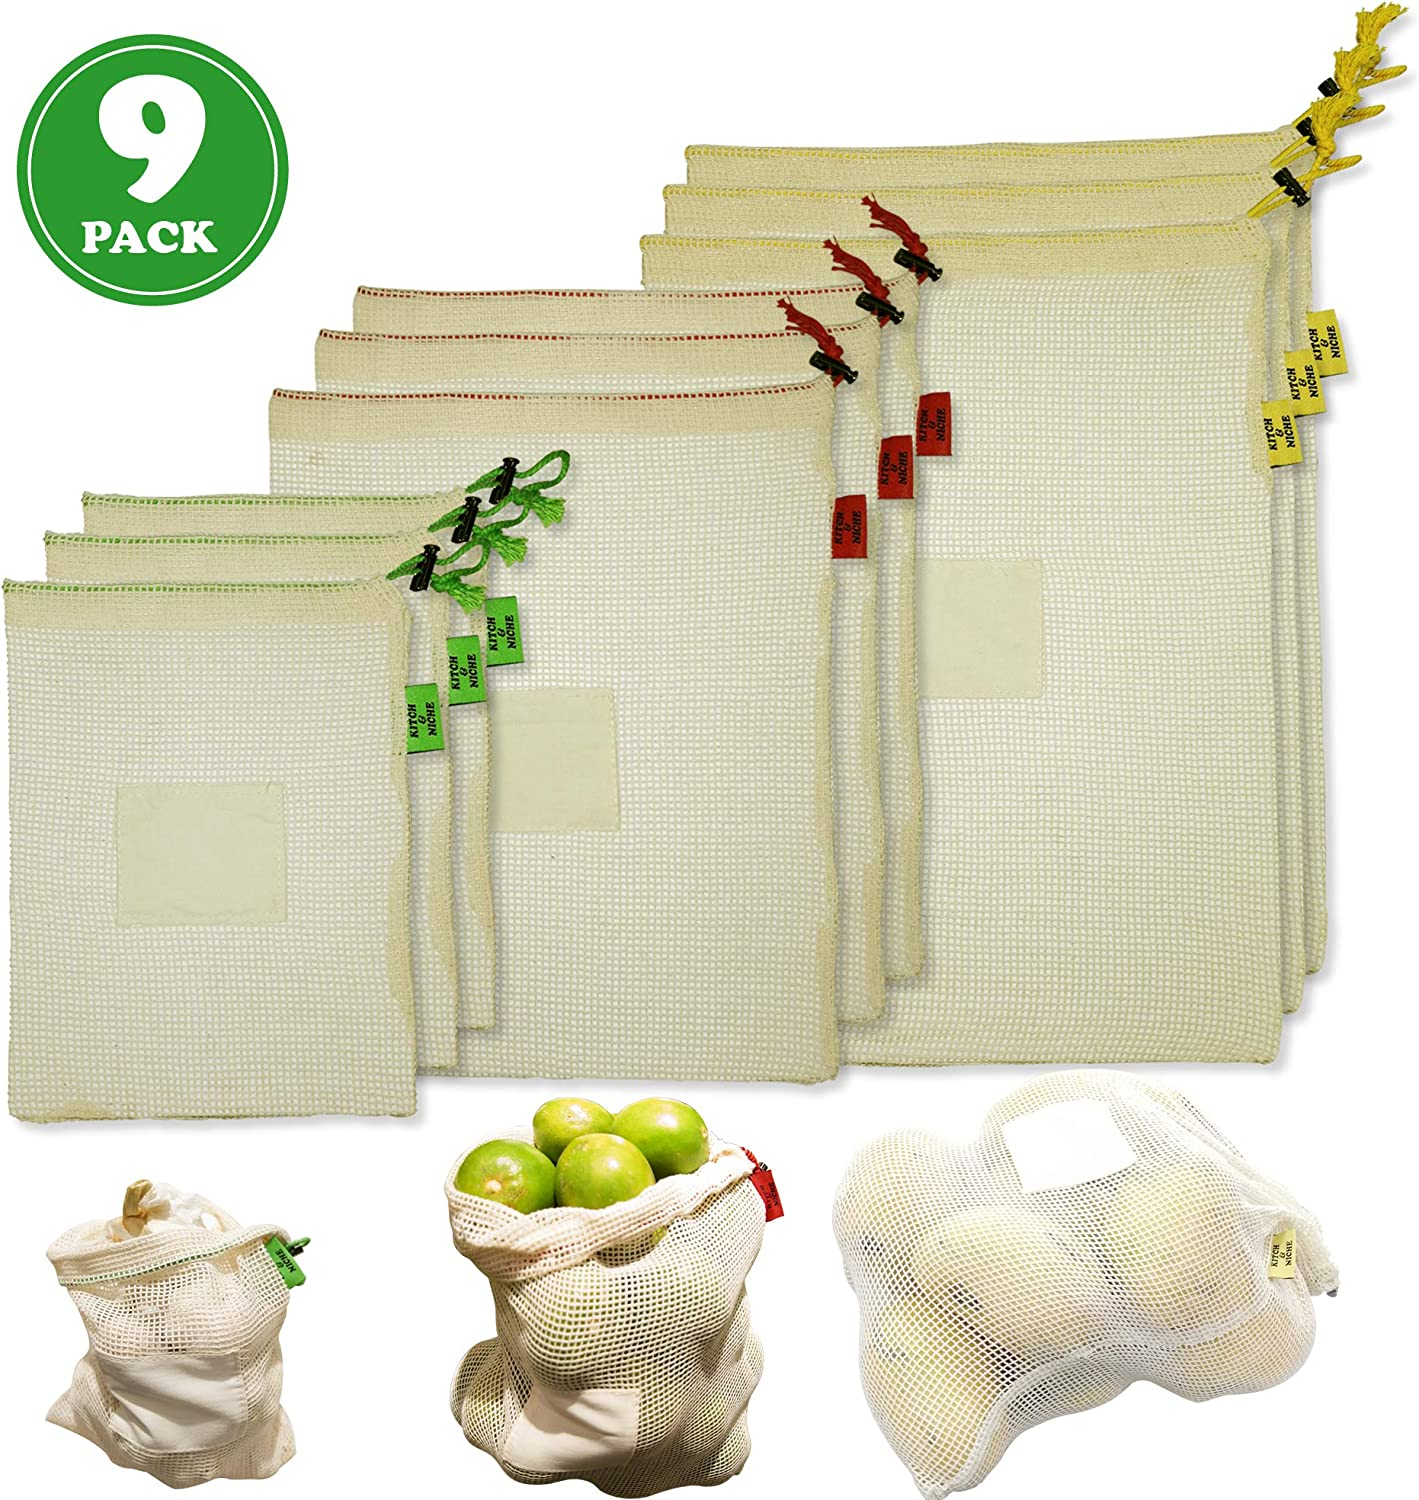 Reusable Produce Bags Set Of 9 - Washable Cotton Mesh Produce Bags with Tare Weight on Tags - Vegetable Bags are Biodegradable, Eco Friendly - Breathable Drawstring Bags for Fruit & Veg Storage.